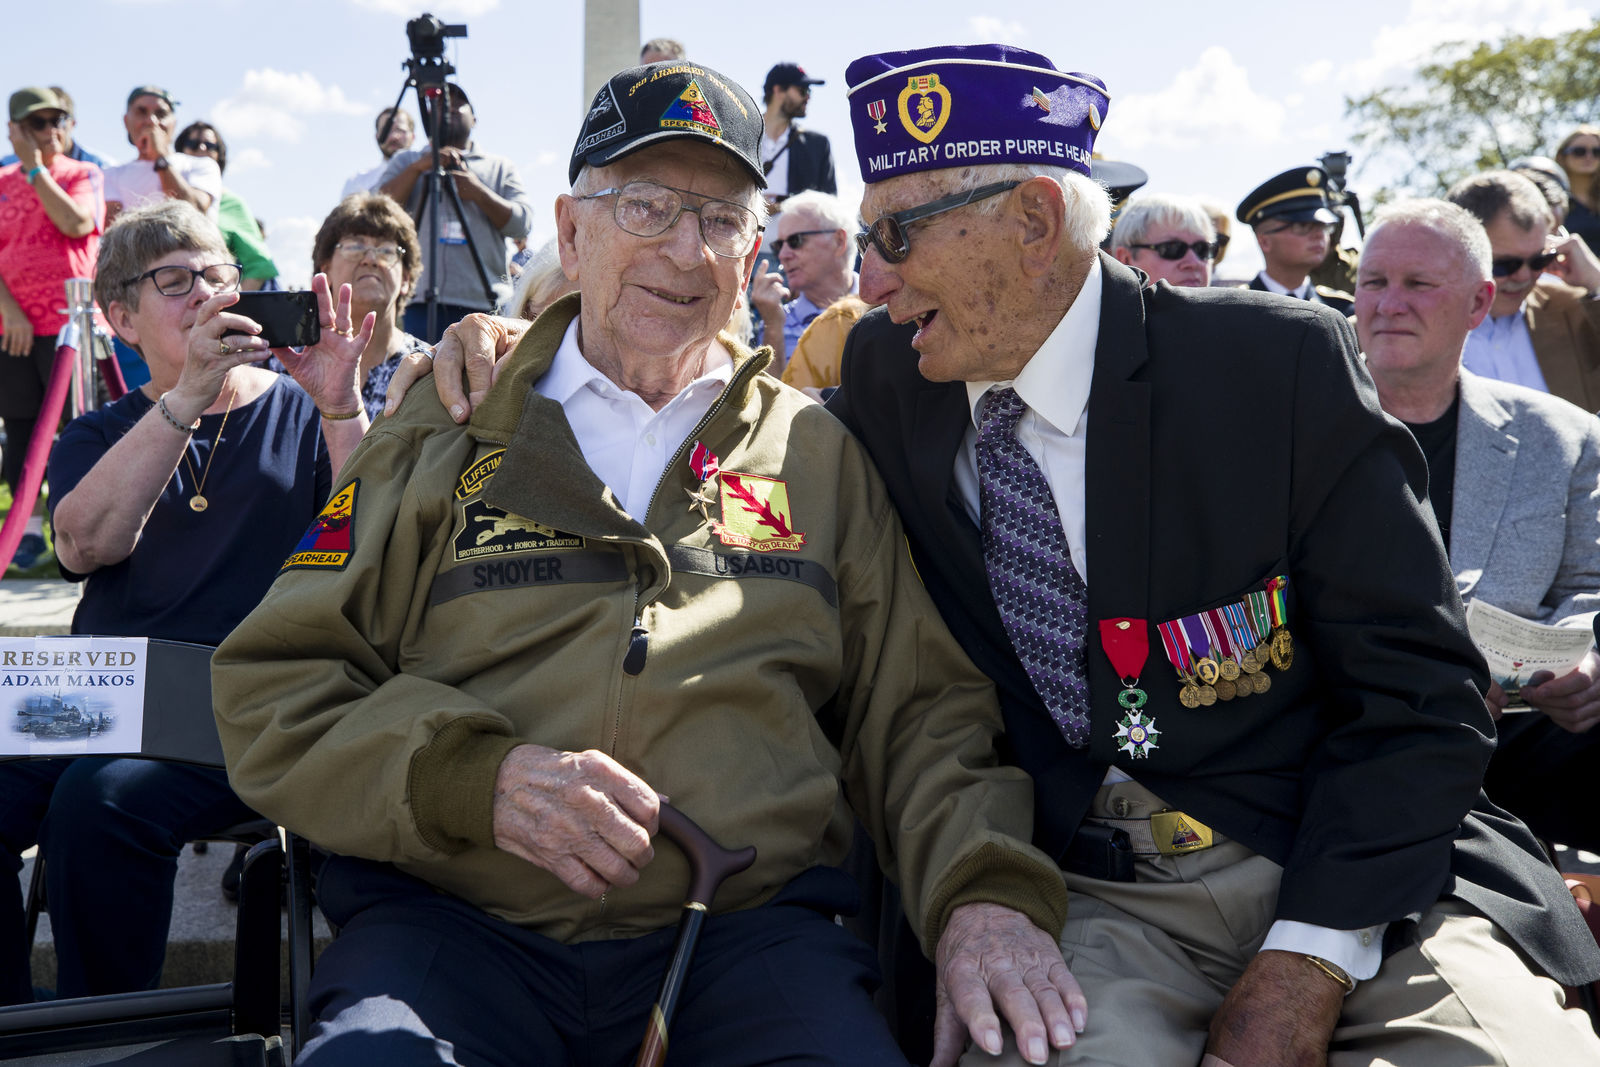 World War II veterans Clarence Smoyer, 96, left, and Joseph Caserta smile after Smoyer was presented the Bronze Star at the World War II Memorial, Wednesday, Sept. 18, 2019, in Washington. Smoyer fought with the U.S. Army's 3rd Armored Division, nicknamed the Spearhead Division. In 1945, he defeated a German Panther tank near the cathedral in Cologne, Germany — a dramatic duel filmed by an Army cameraman that was seen all over the world. (AP Photo/Alex Brandon)